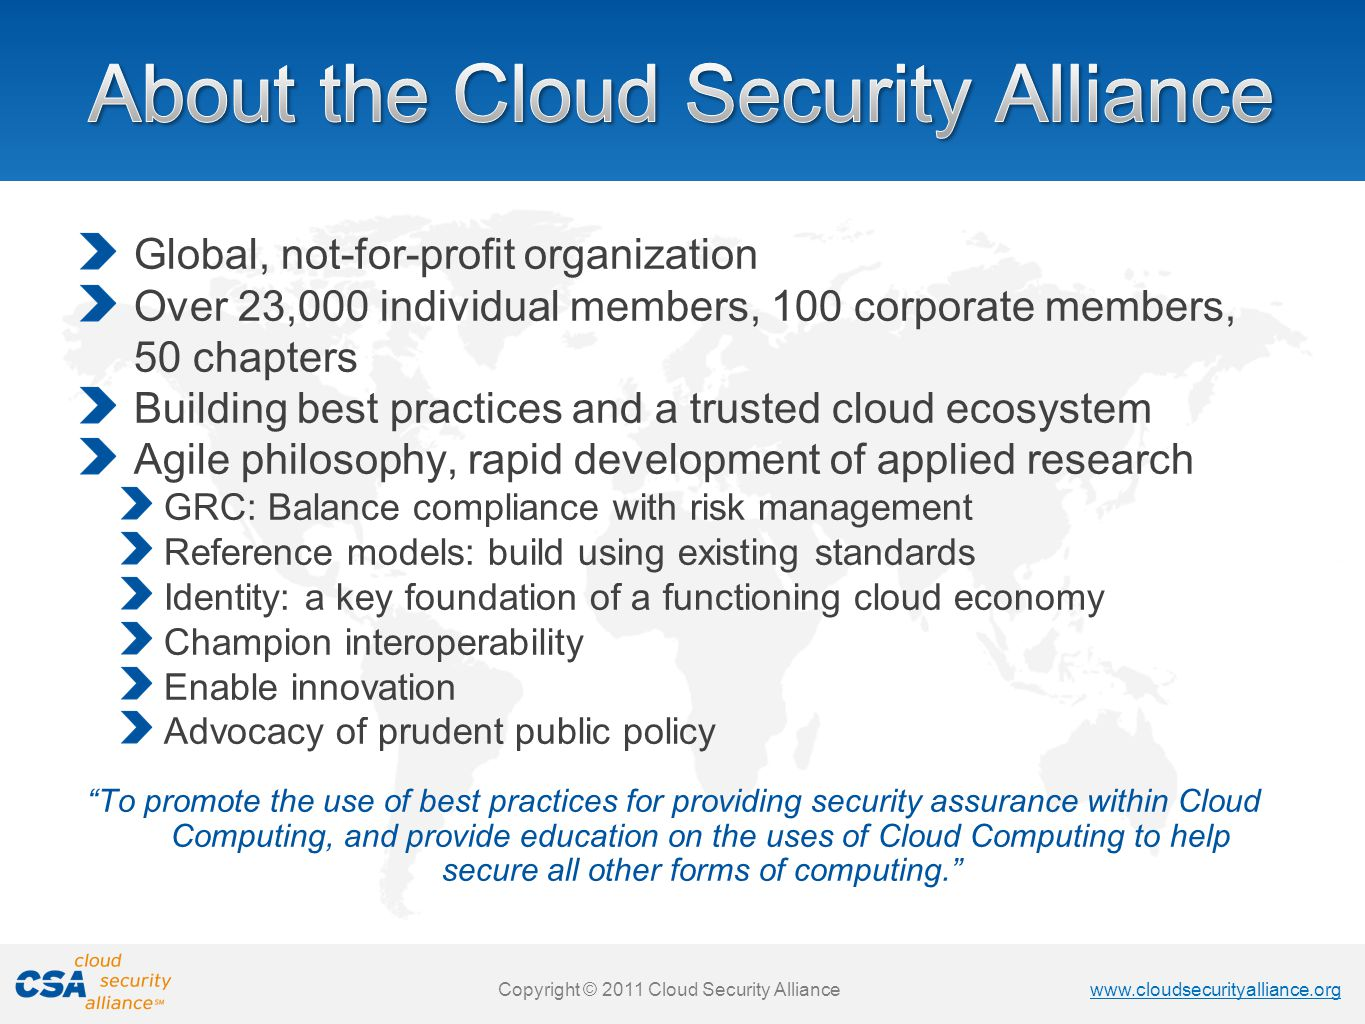 www.cloudsecurityalliance.org Copyright © 2011 Cloud Security Alliance www.cloudsecurityalliance.org Copyright © 2011 Cloud Security Alliance Global, not-for-profit organization Over 23,000 individual members, 100 corporate members, 50 chapters Building best practices and a trusted cloud ecosystem Agile philosophy, rapid development of applied research GRC: Balance compliance with risk management Reference models: build using existing standards Identity: a key foundation of a functioning cloud economy Champion interoperability Enable innovation Advocacy of prudent public policy To promote the use of best practices for providing security assurance within Cloud Computing, and provide education on the uses of Cloud Computing to help secure all other forms of computing.